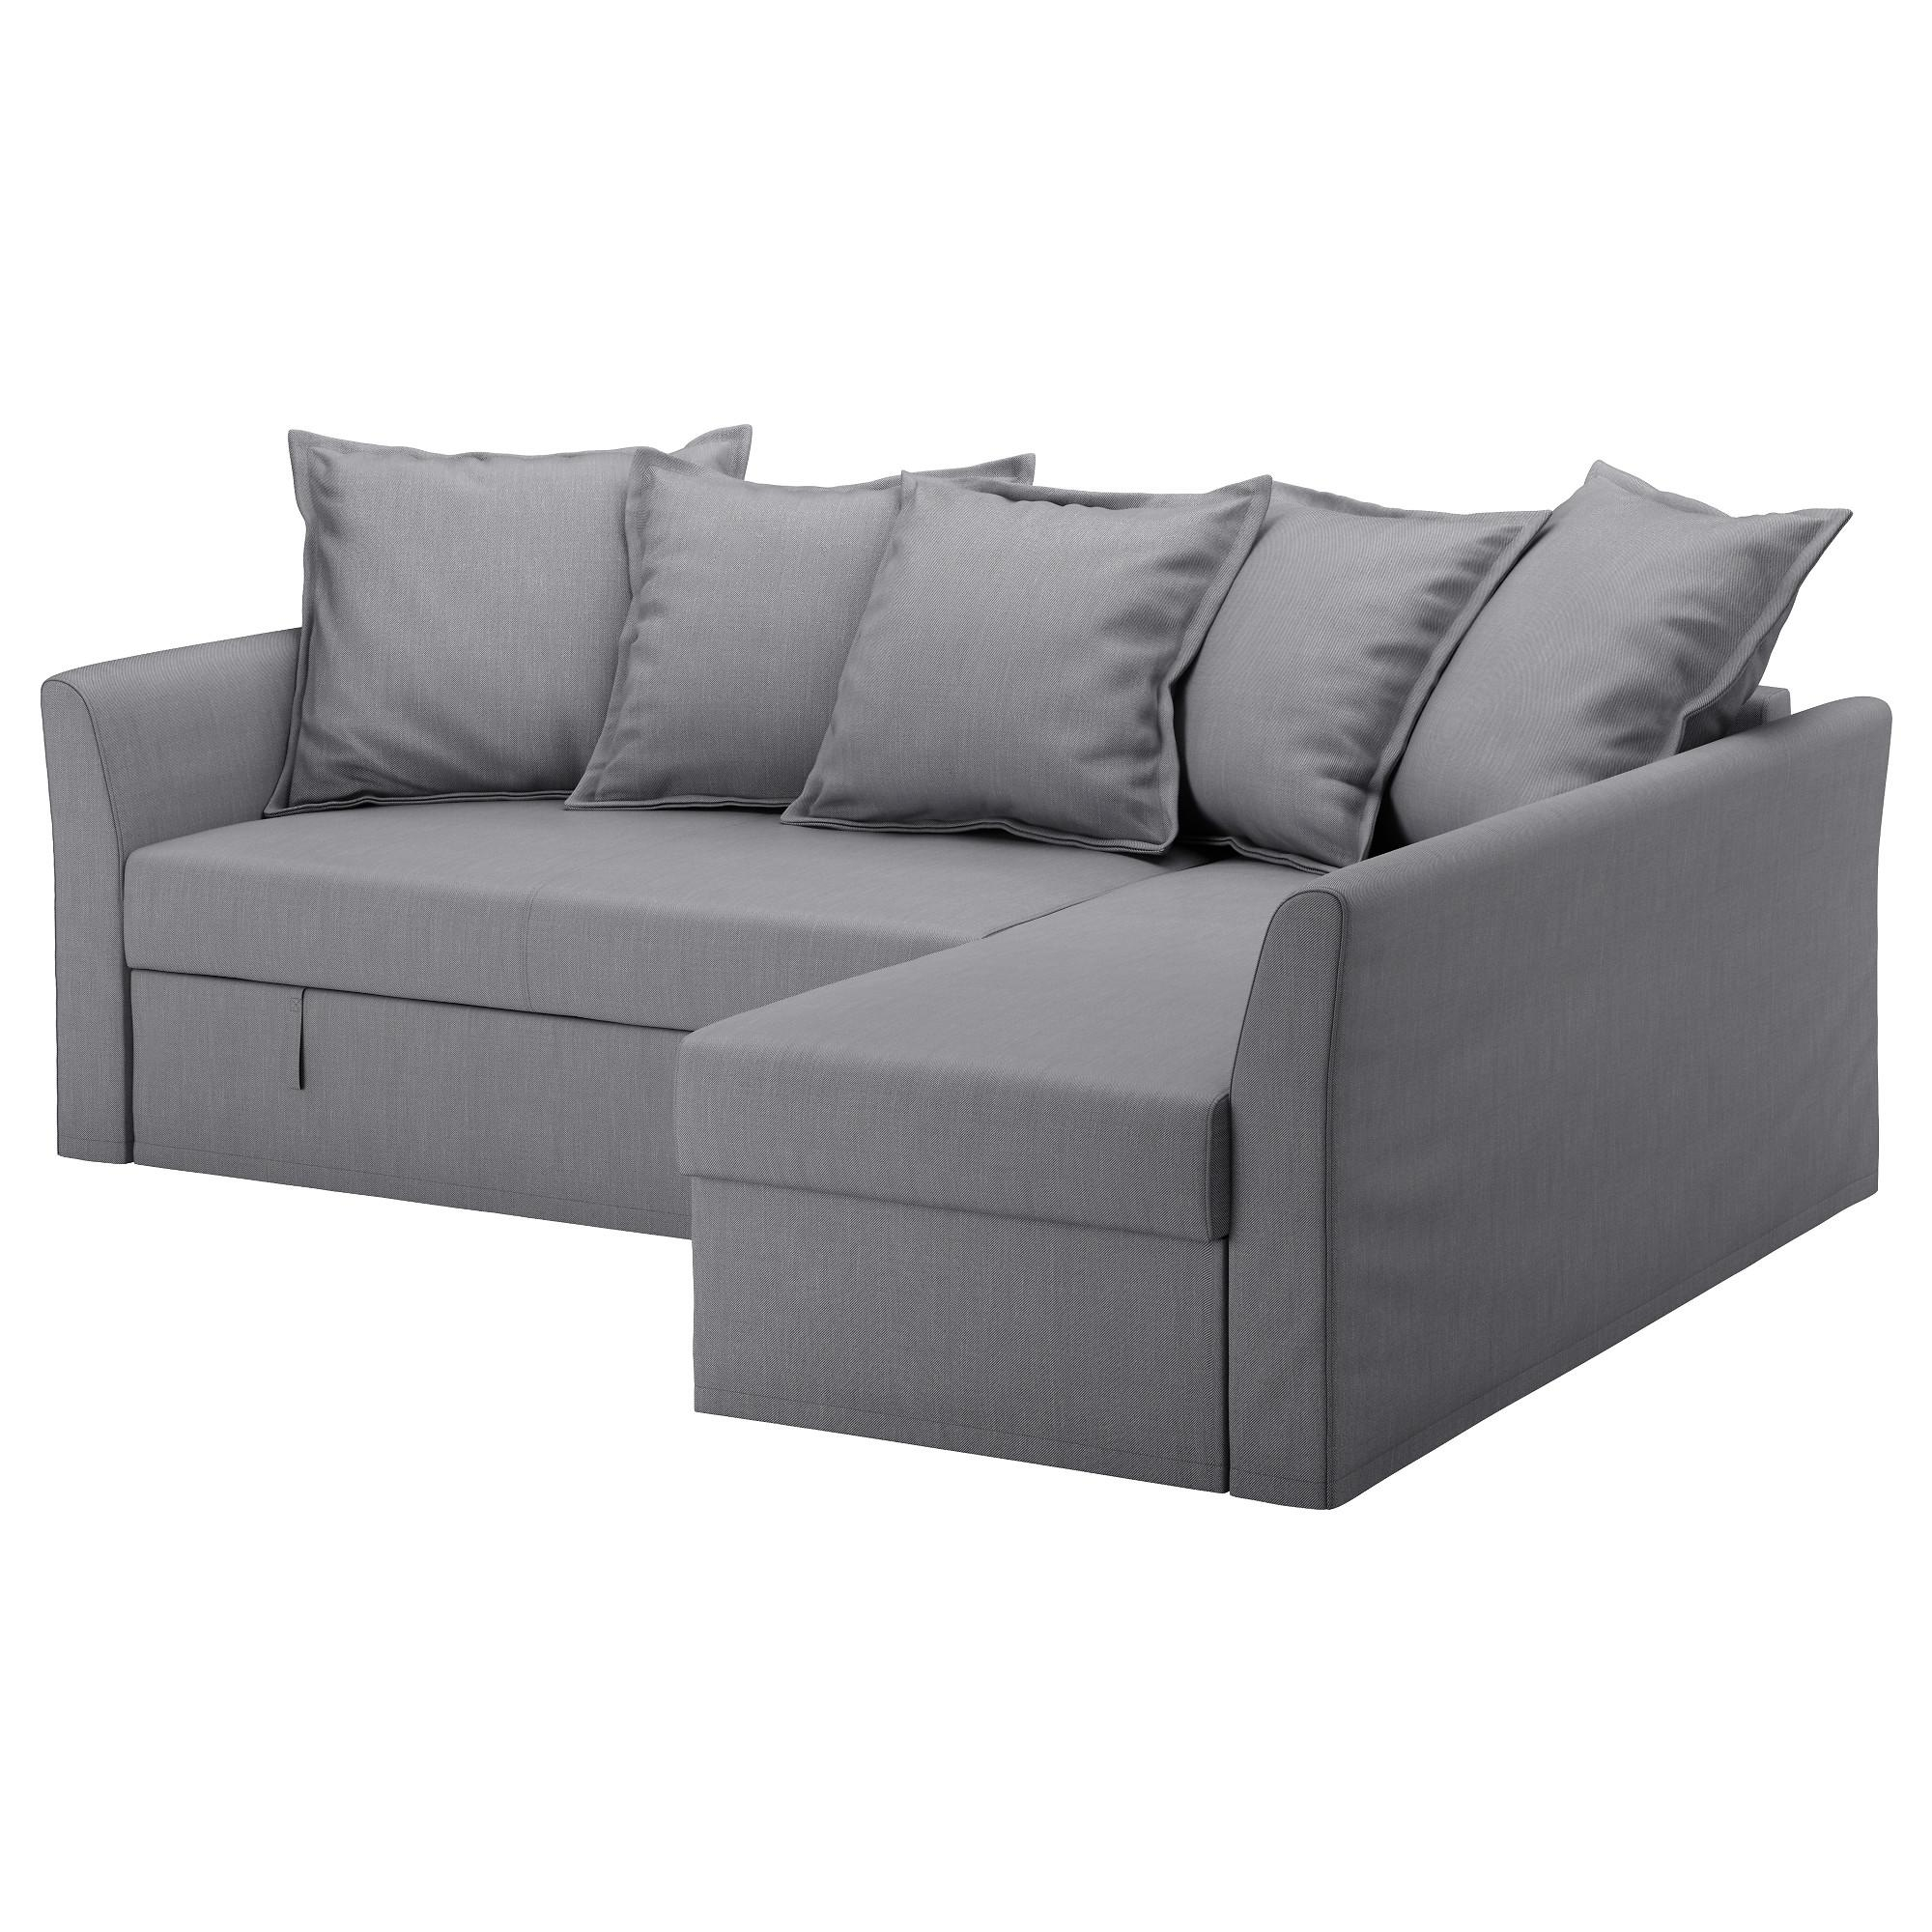 ikea single sleeper sofa contemporary sets india 2018 latest beds ideas